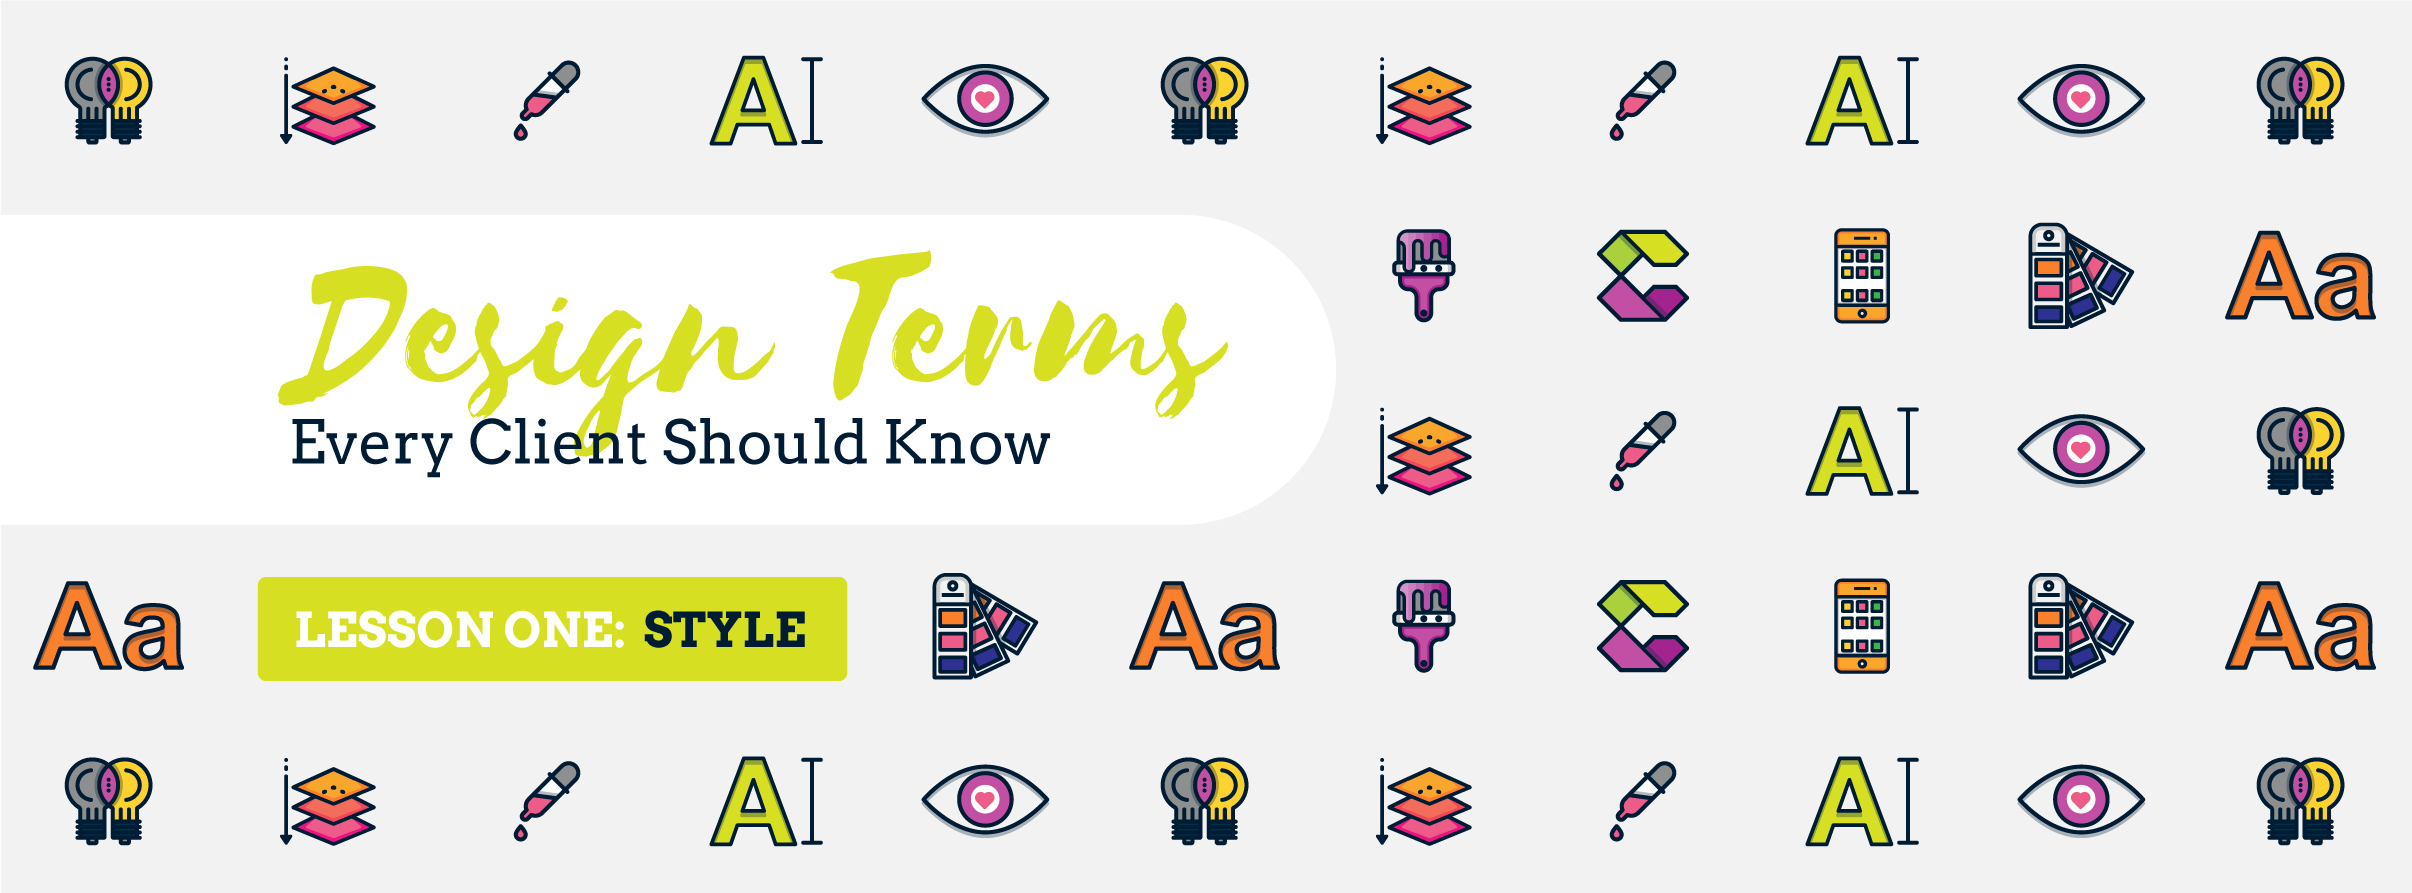 15 design terms every designer should know